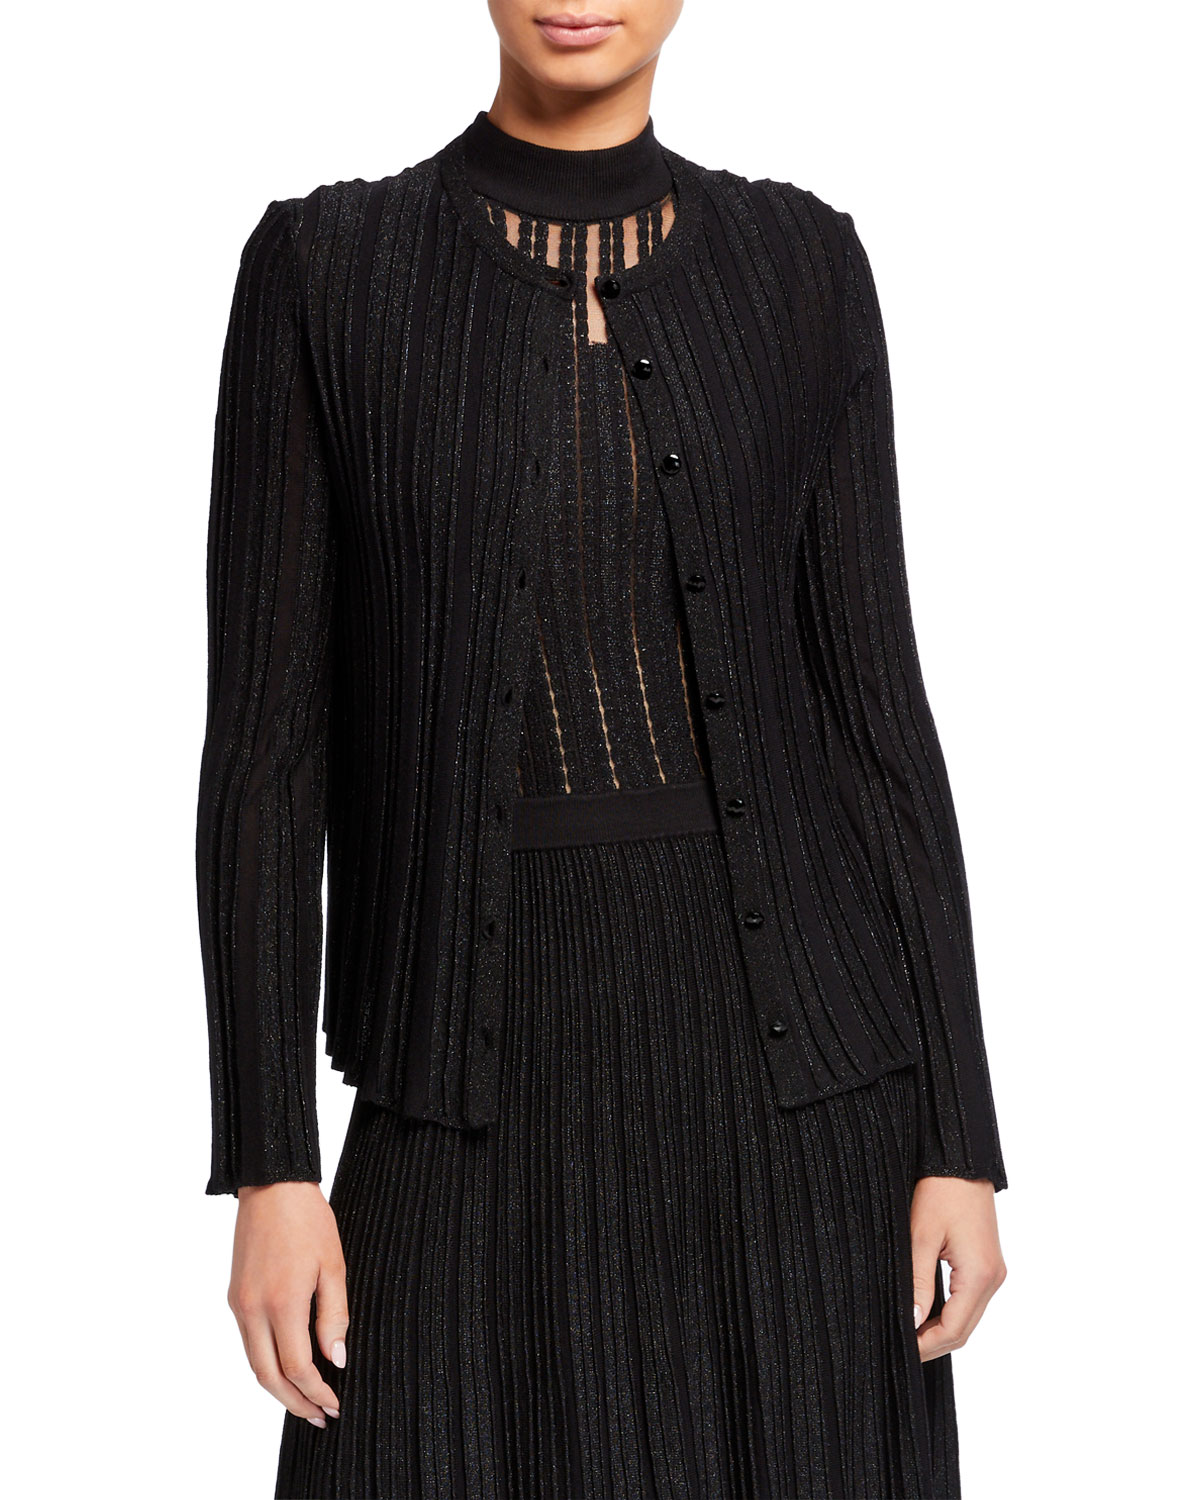 Emporio Armani Metallic Knit Button-Front Flare-Sleeve Cardigan and Matching Items & Matching Items